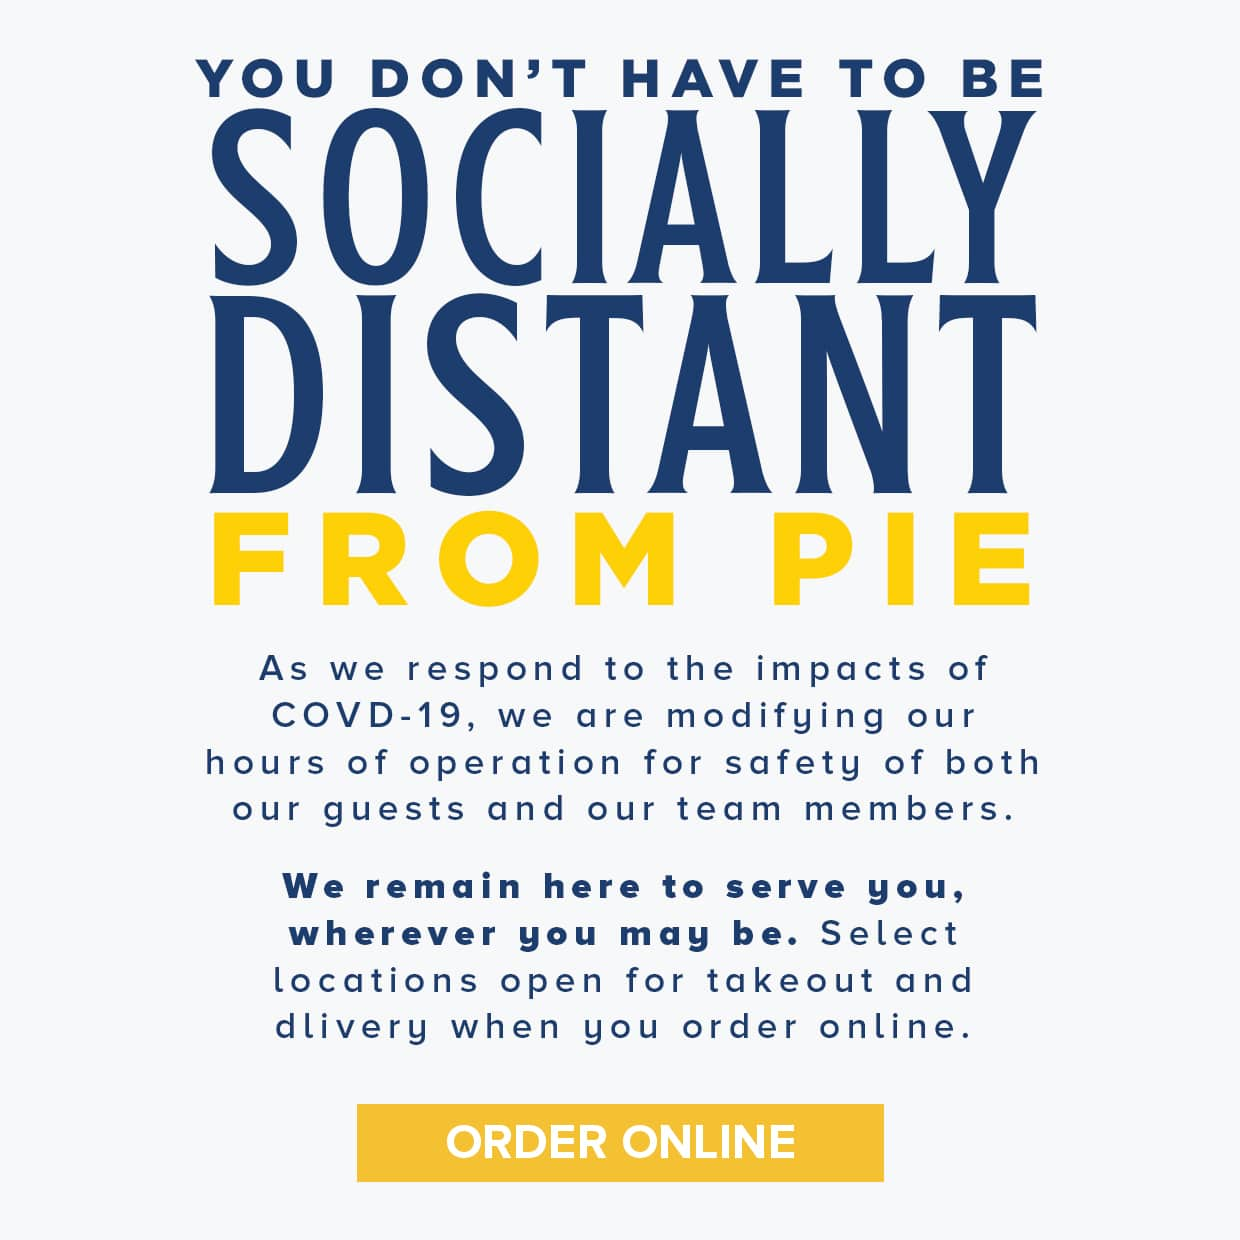 You don't have to be socially distant from pie as we respond to the impacts of covid-19, we are modifying our hours of operation for safety of both our guests and our team members. We remain here to serve you, wherever you may be. Select locations open for takeout and delivery when you order online. Order Online